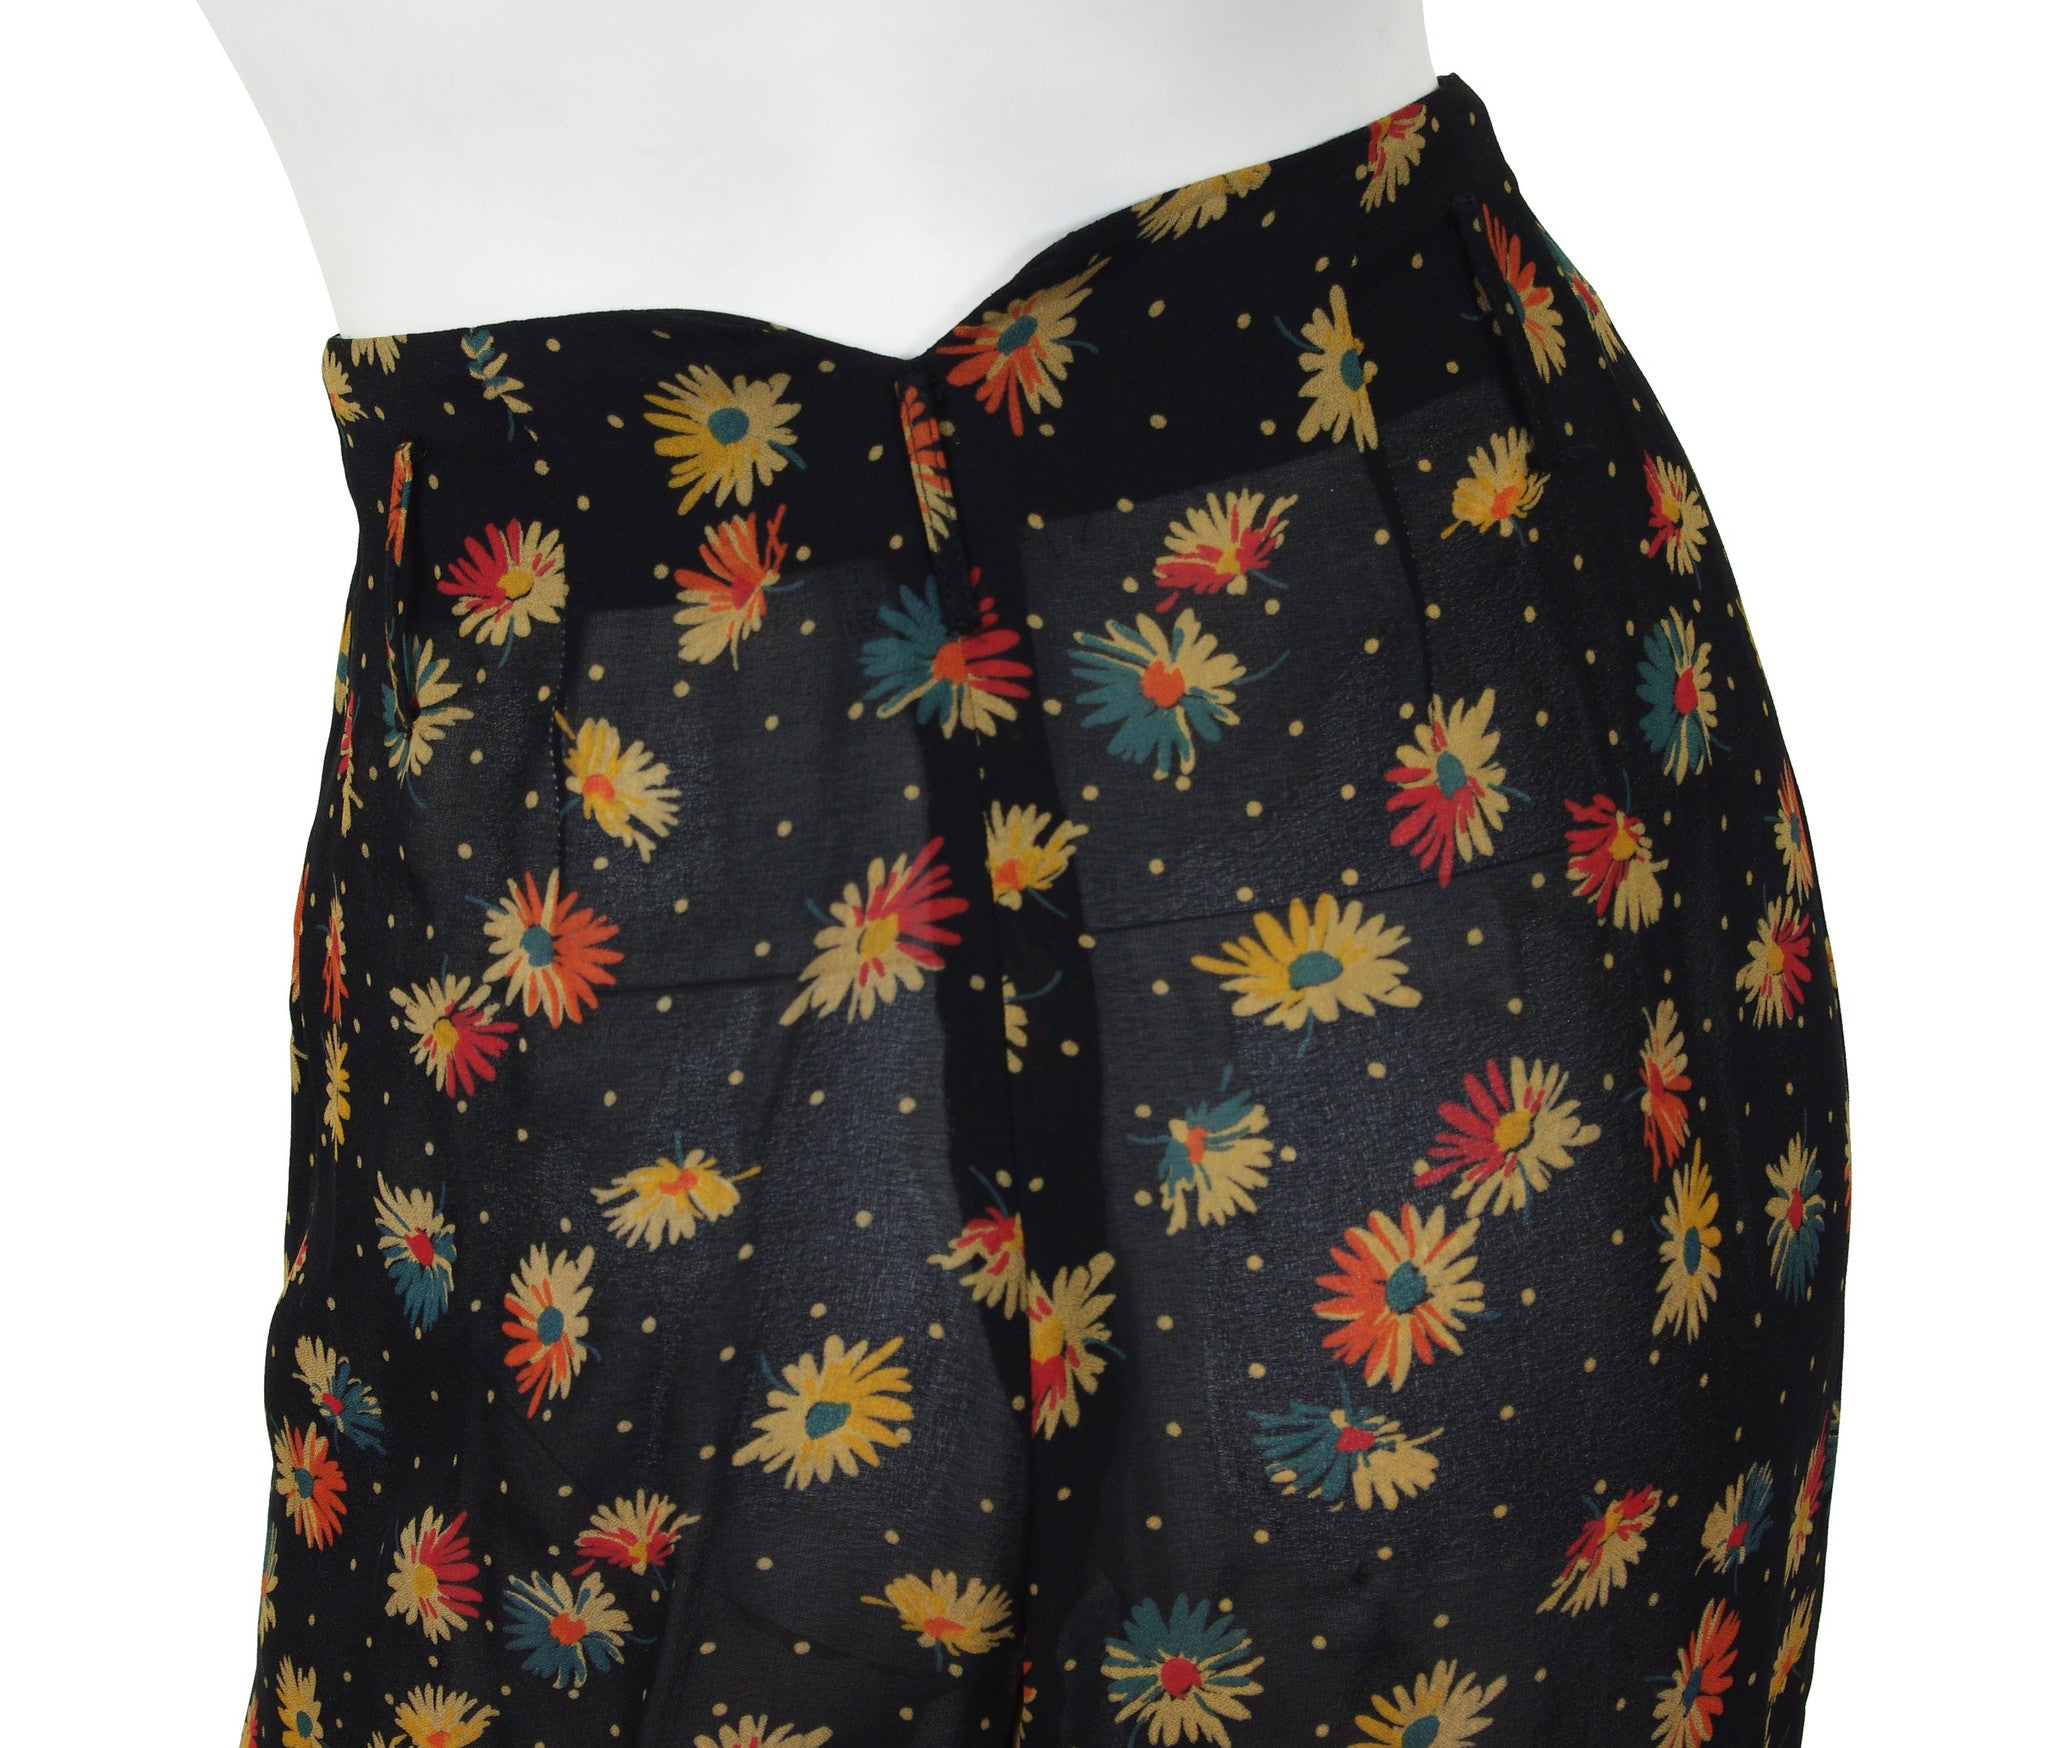 1990s Floral Black Chiffon High Waisted Wide-Leg Pants